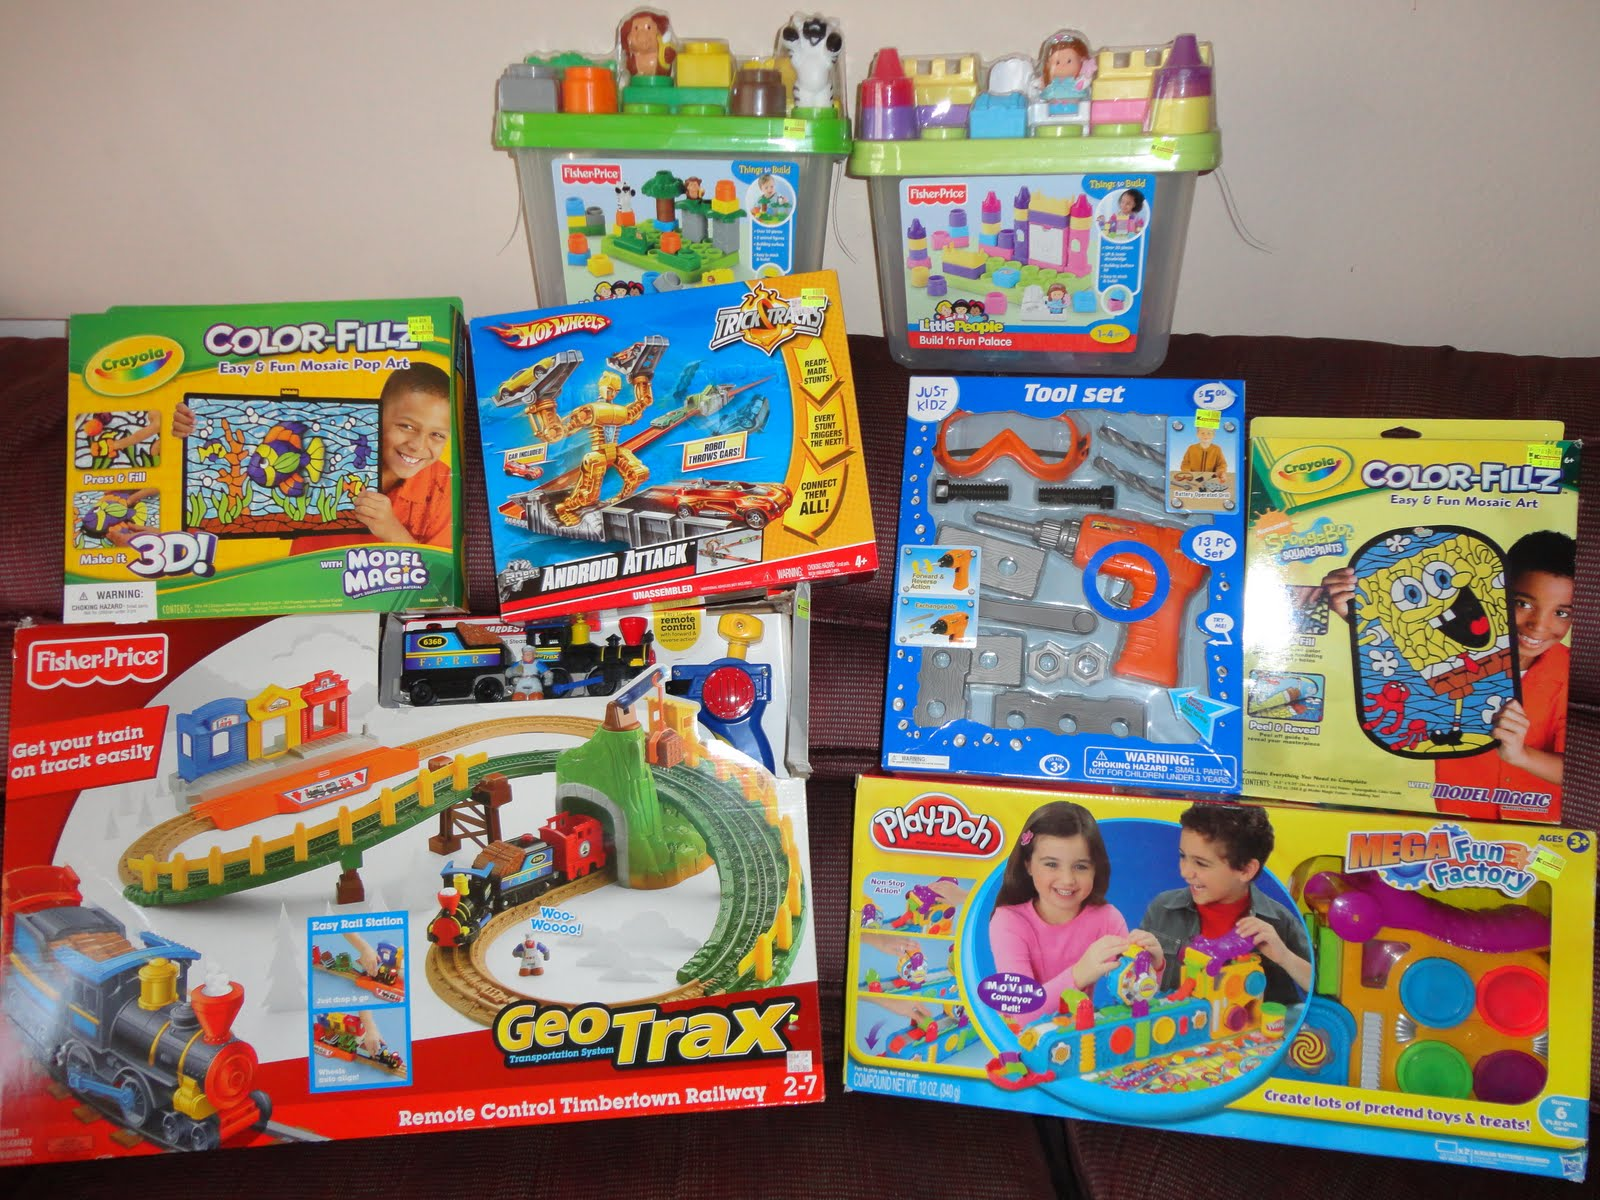 M Loves Deals Kmart Take an additional 50% off TOY CLEARANCE on